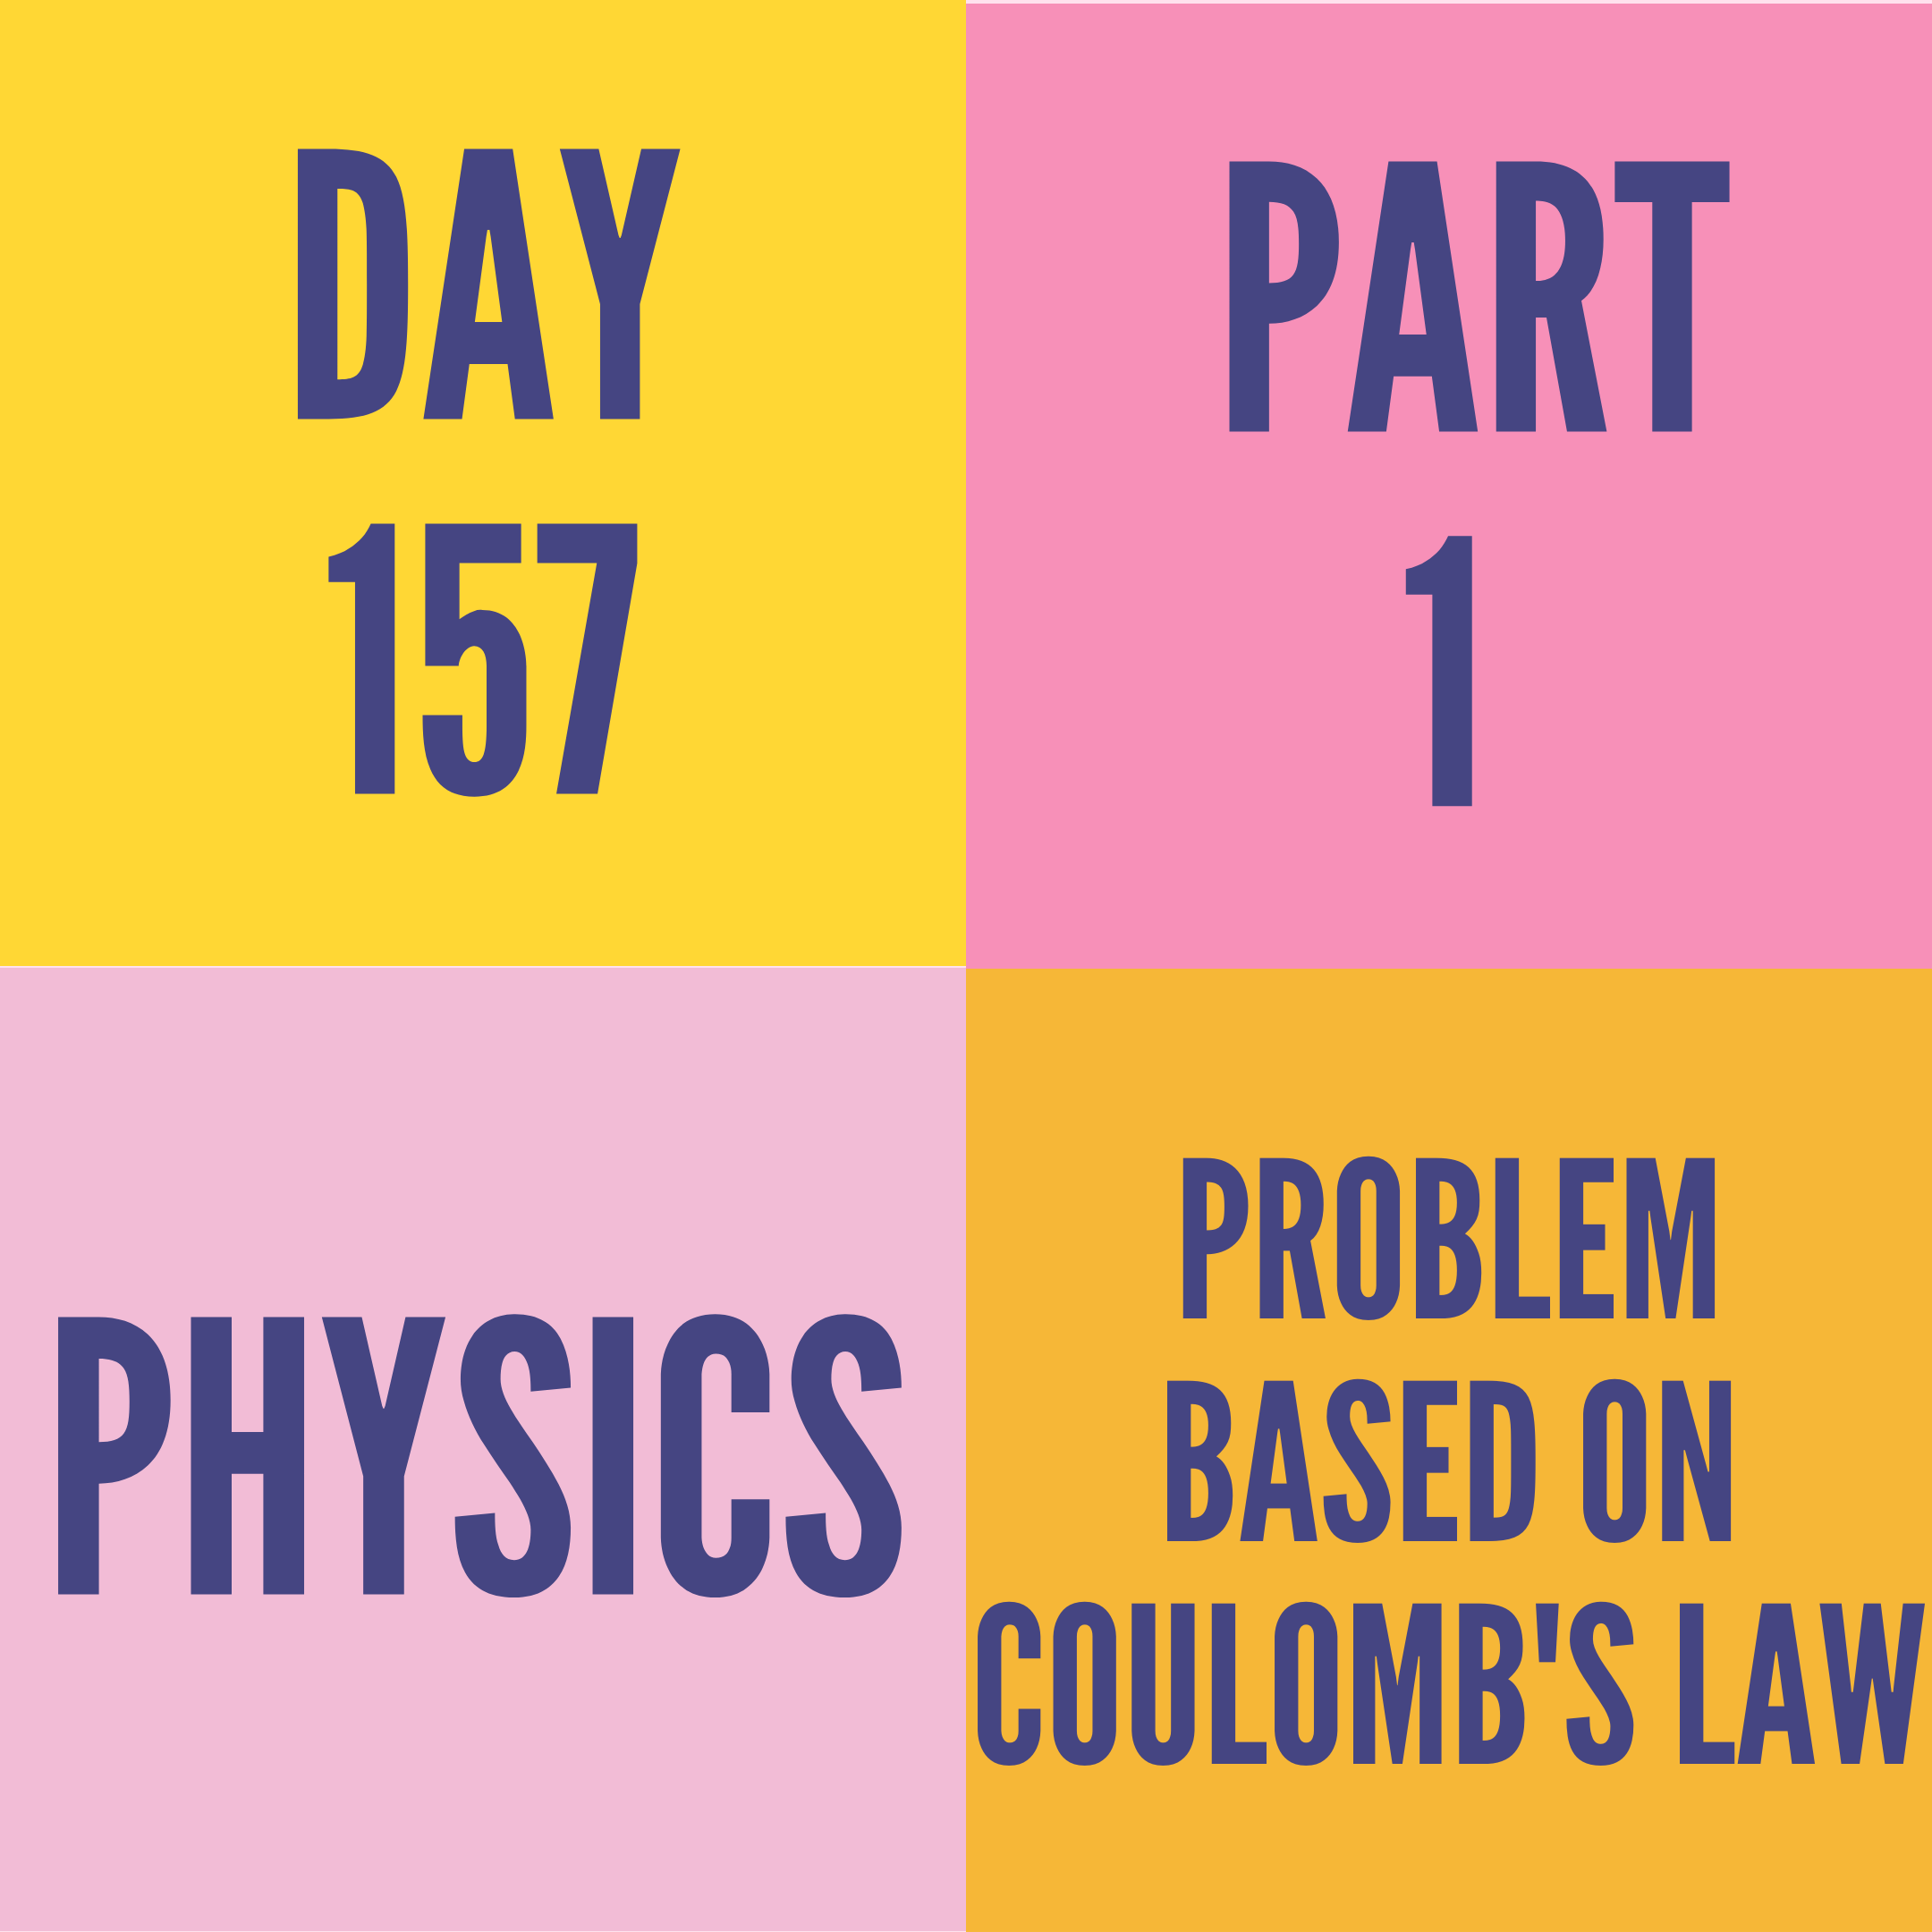 DAY-157 PART-1 PROBLEM BASED ON COULOMB'S LAW